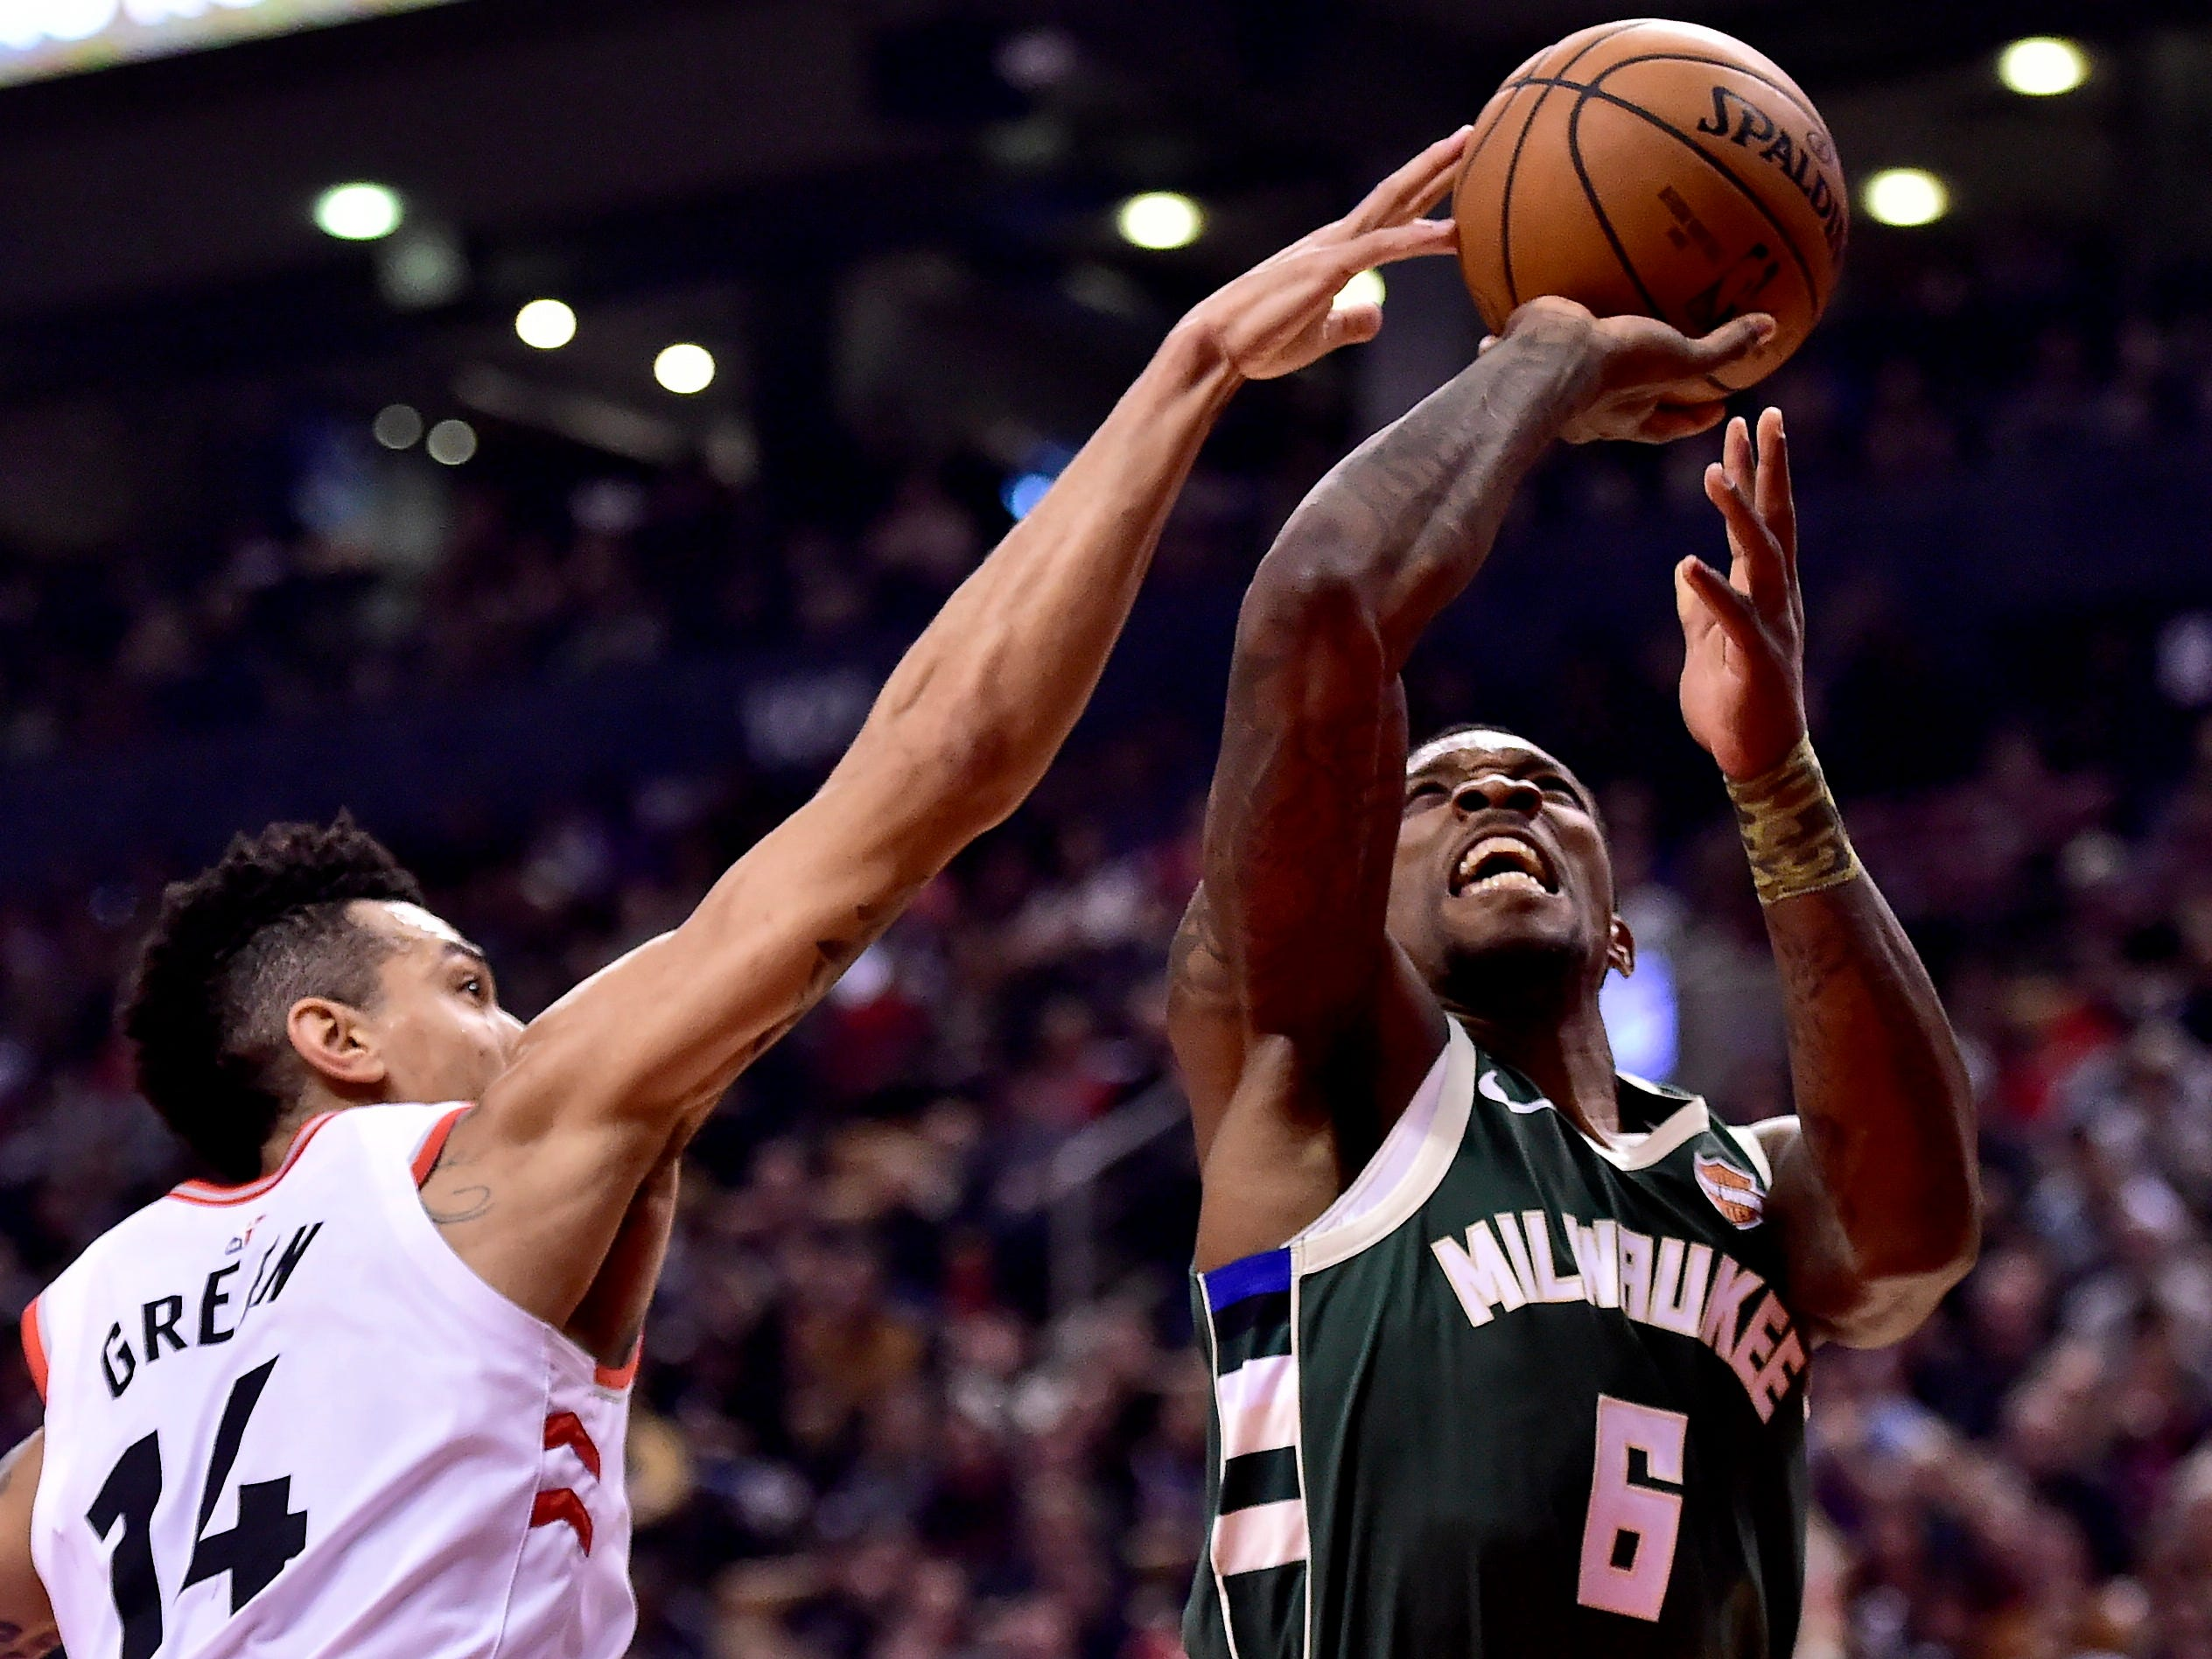 Milwaukee Bucks guard Eric Bledsoe (6) drives to the net as Toronto Raptors guard Danny Green (14) defends during first half NBA basketball action in Toronto on Sunday, Dec. 9, 2018. (Frank Gunn/The Canadian Press via AP)